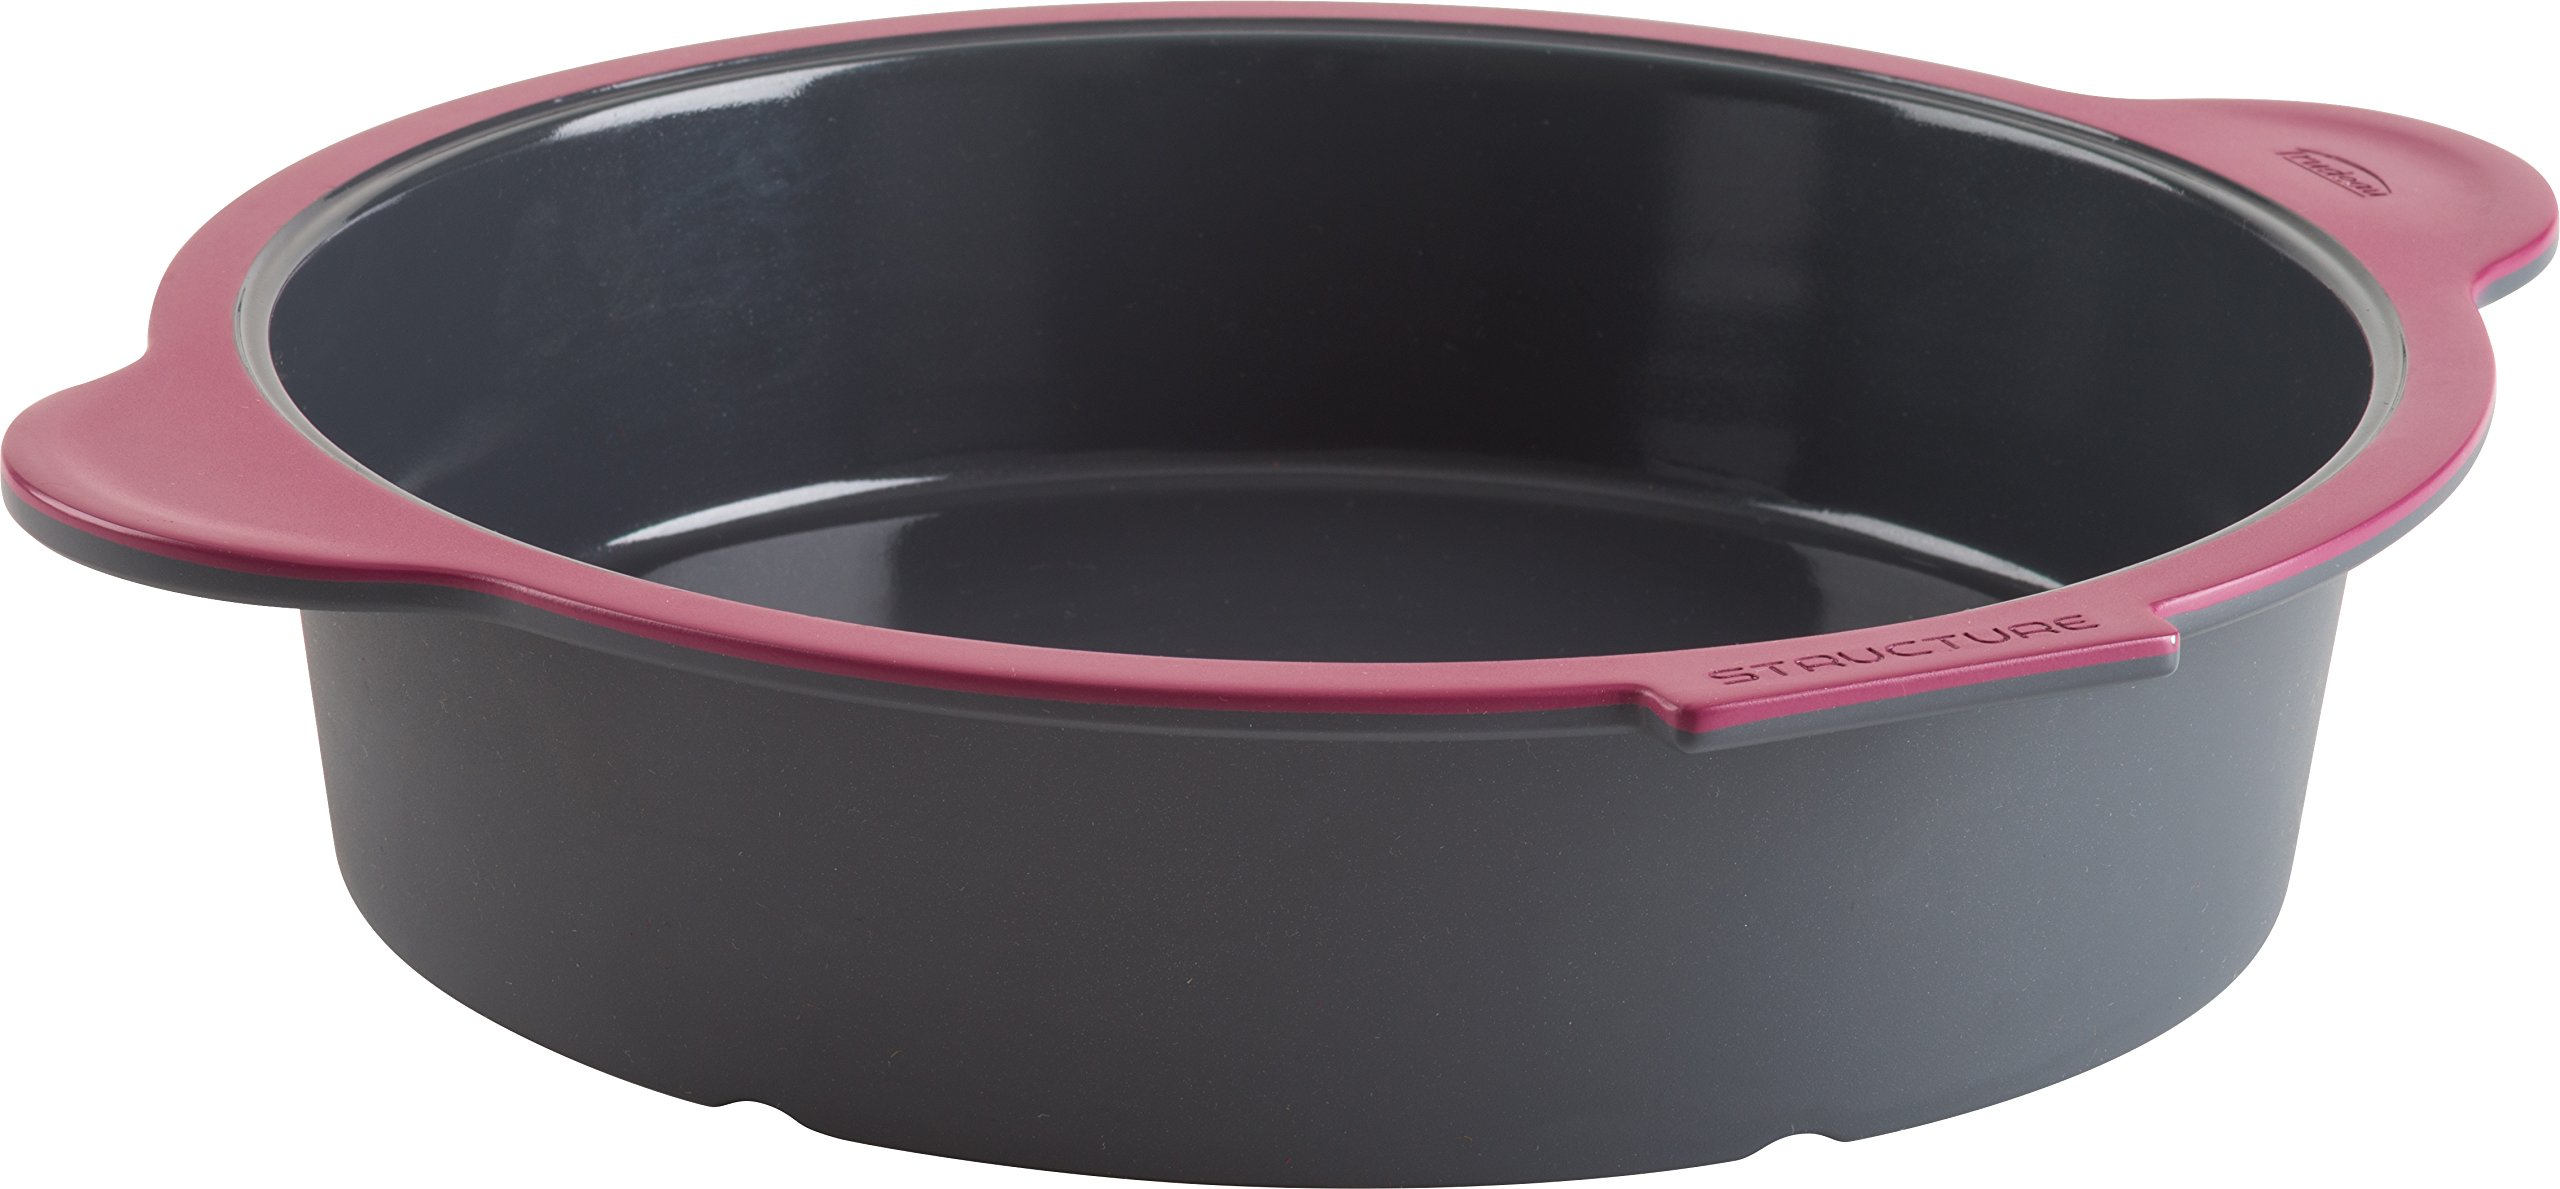 Trudeau 09914011 Structure Round Cake Pan in Silicone, Grey/Pink